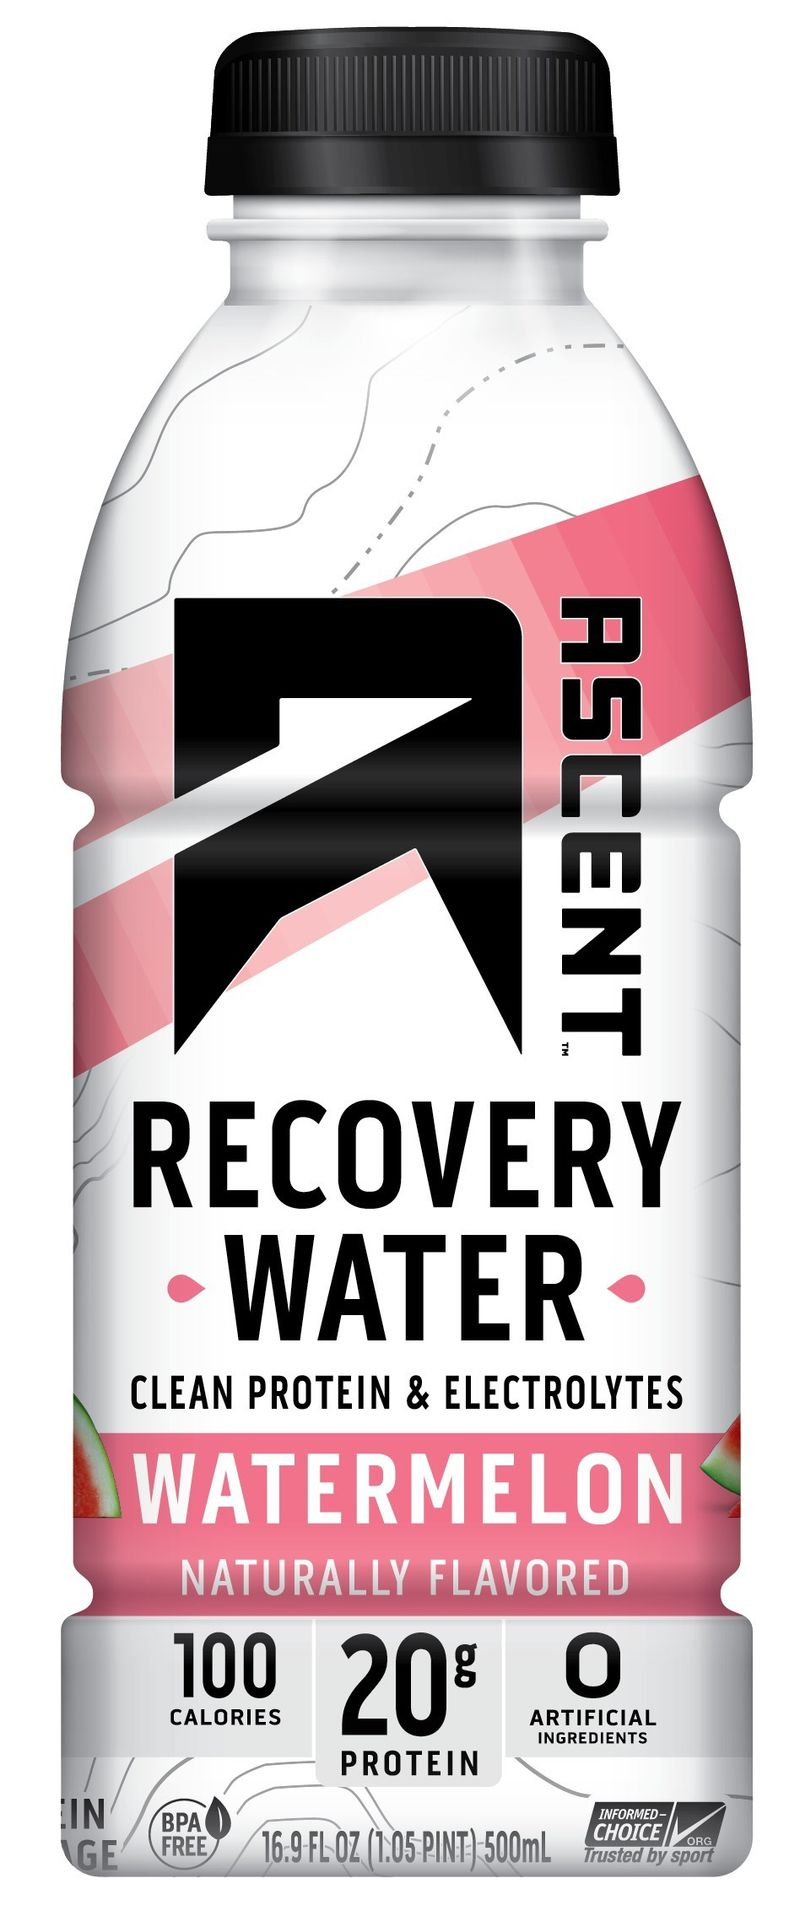 Water-Based Recovery Beverages